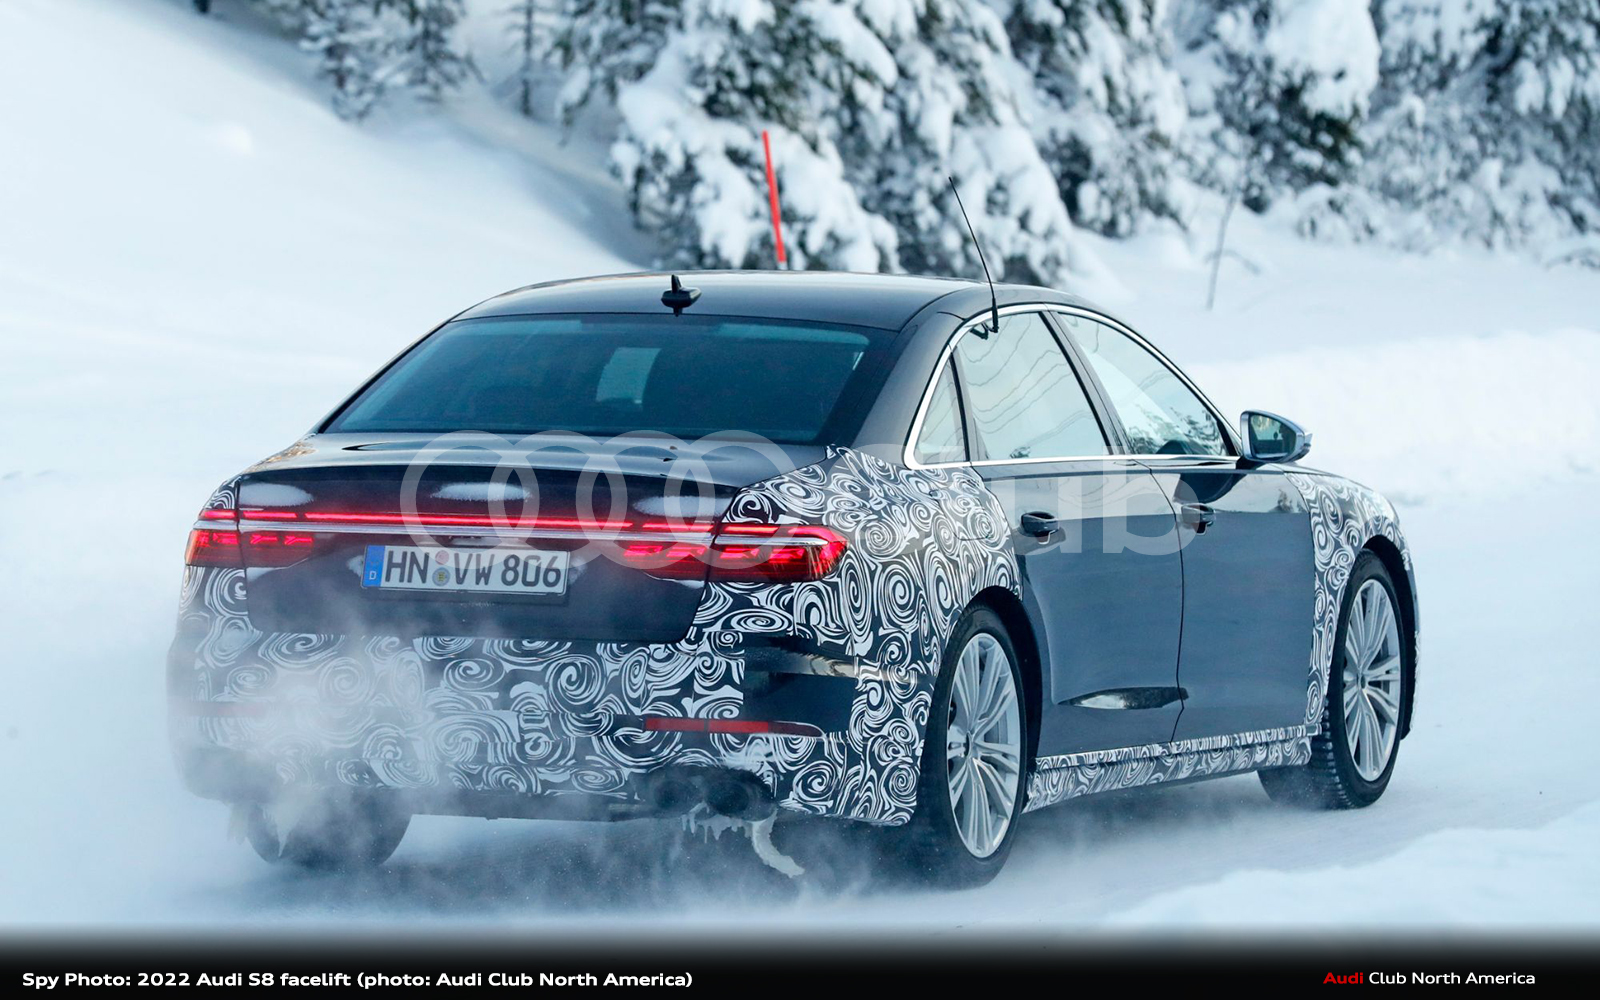 Spy Photo: 2022 Audi S8 Facelift